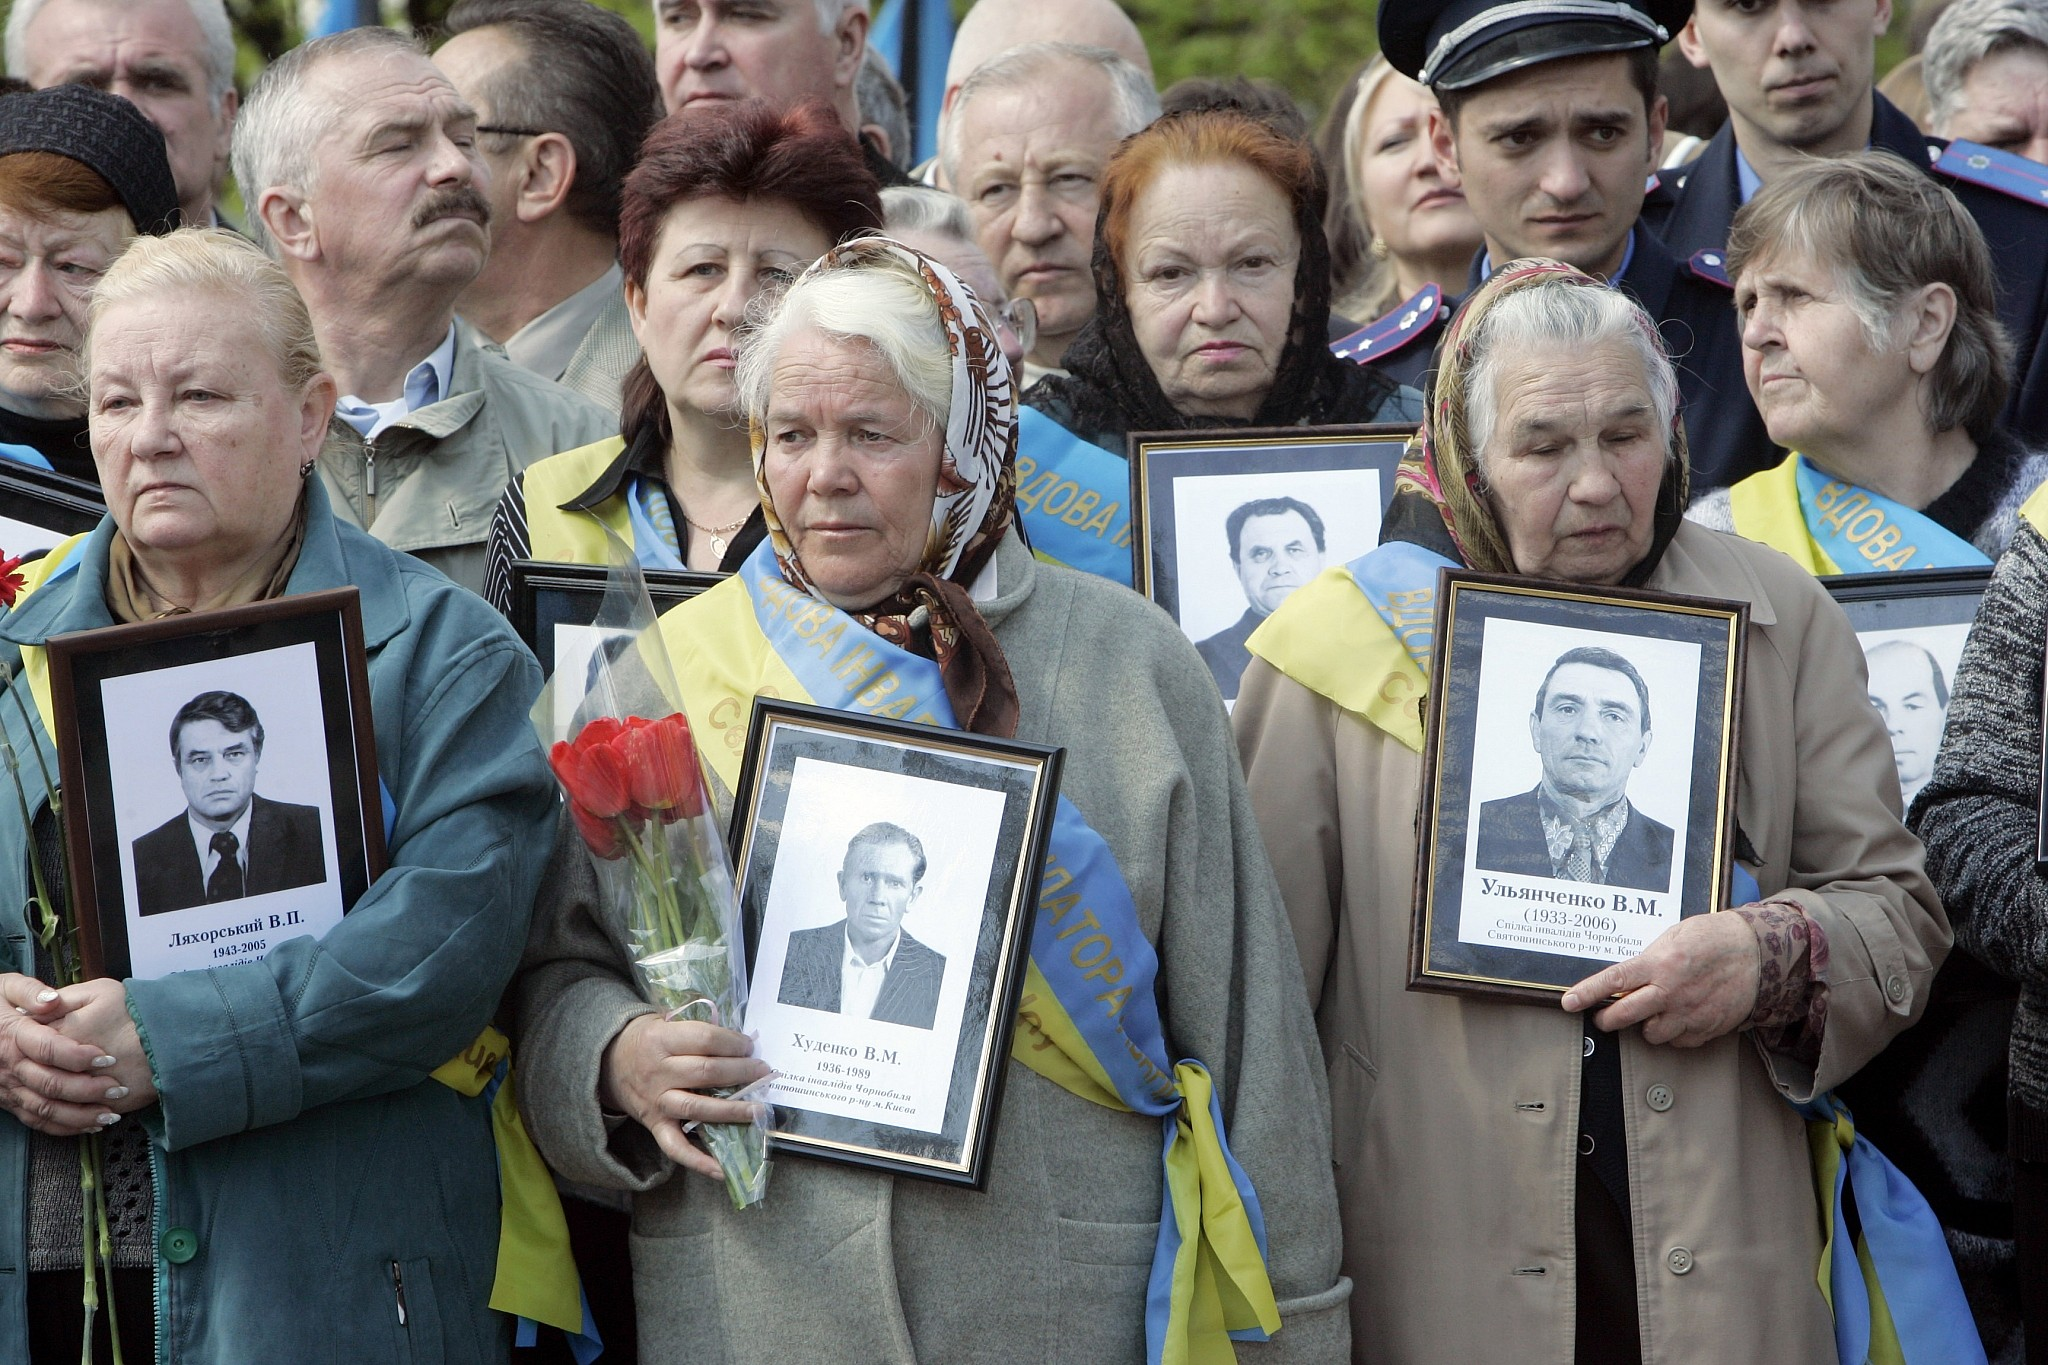 The widows of Chernobyl victims hold portraits of their husbands who died following the clean-up operations for the 1986 Chernobyl nuclear explosion, at Chernobyl's victim monument in Ukraine's capital Kiev, Saturday, April 26, 2008. (AP Photo/Efrem Lukatsky)